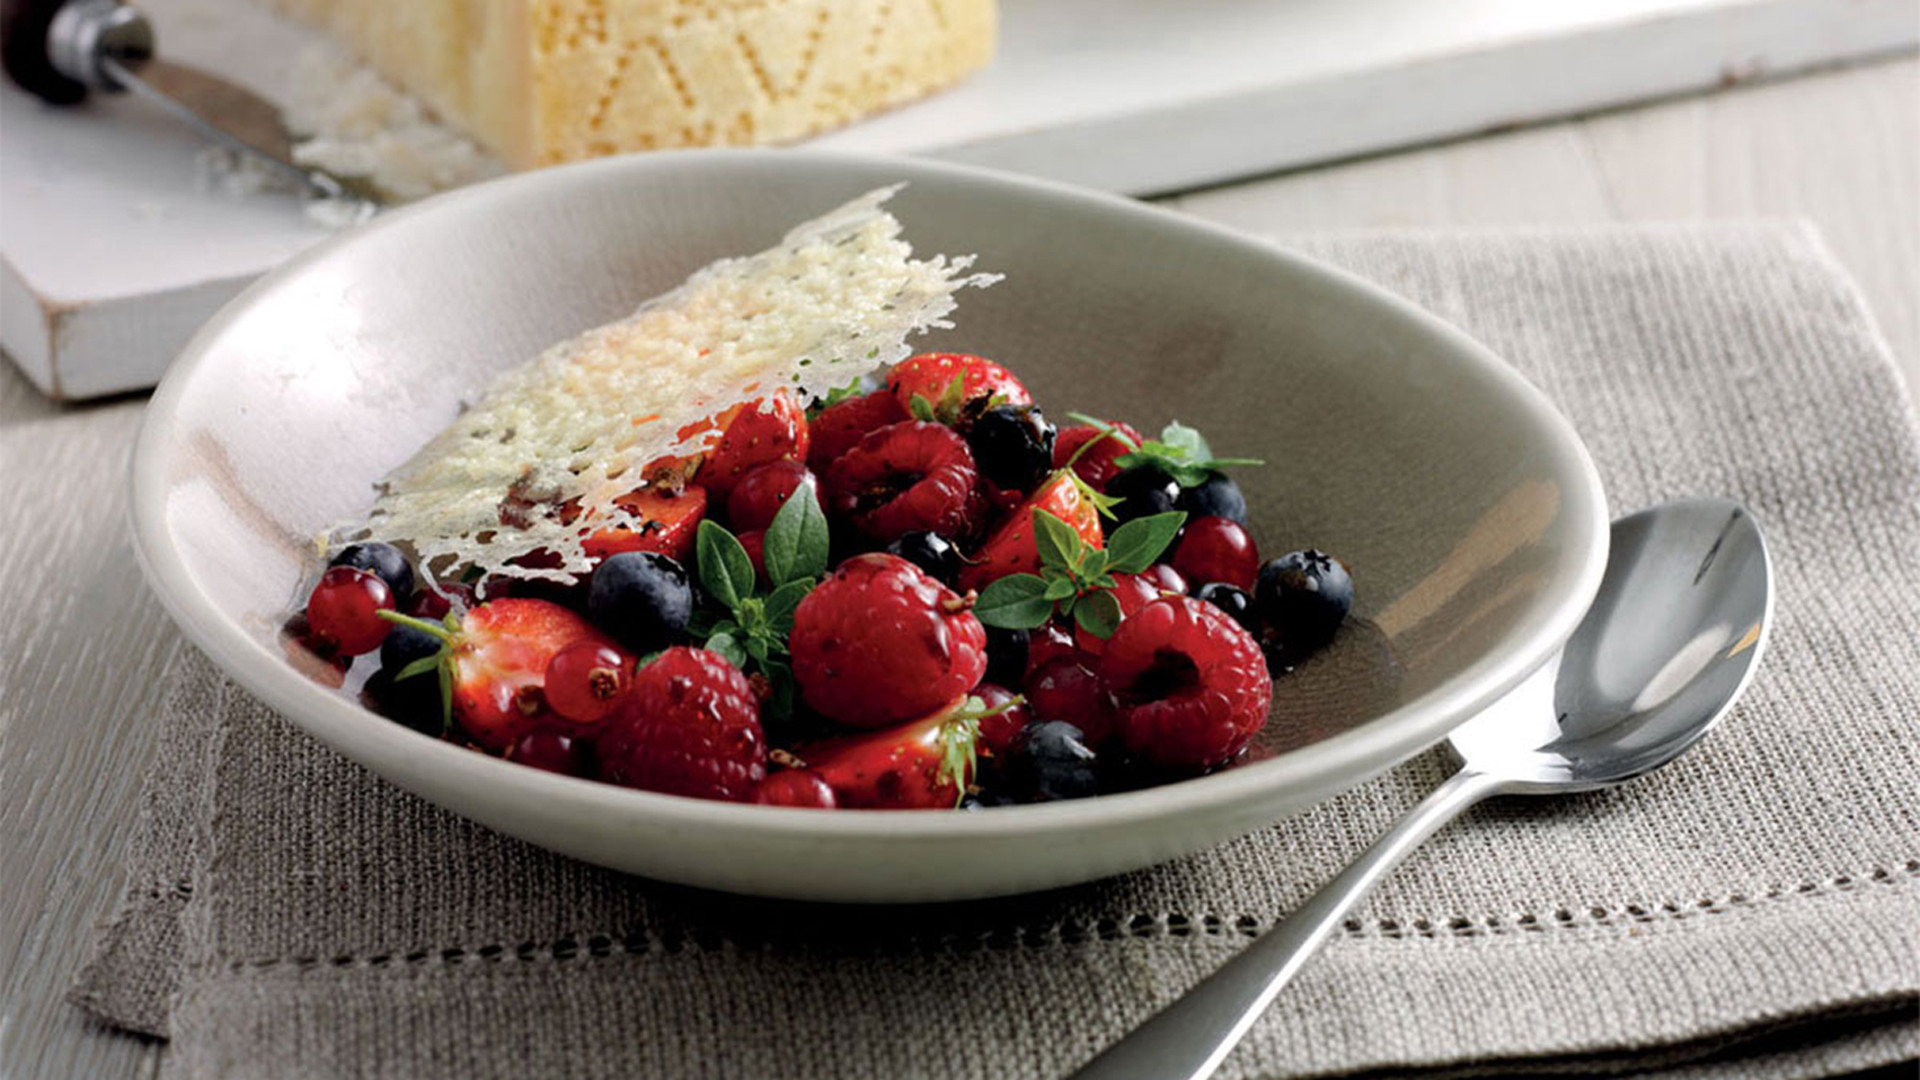 Italian holiday appetizers: Wild berry salad with basil, sichuan pepper & grana padano crisps